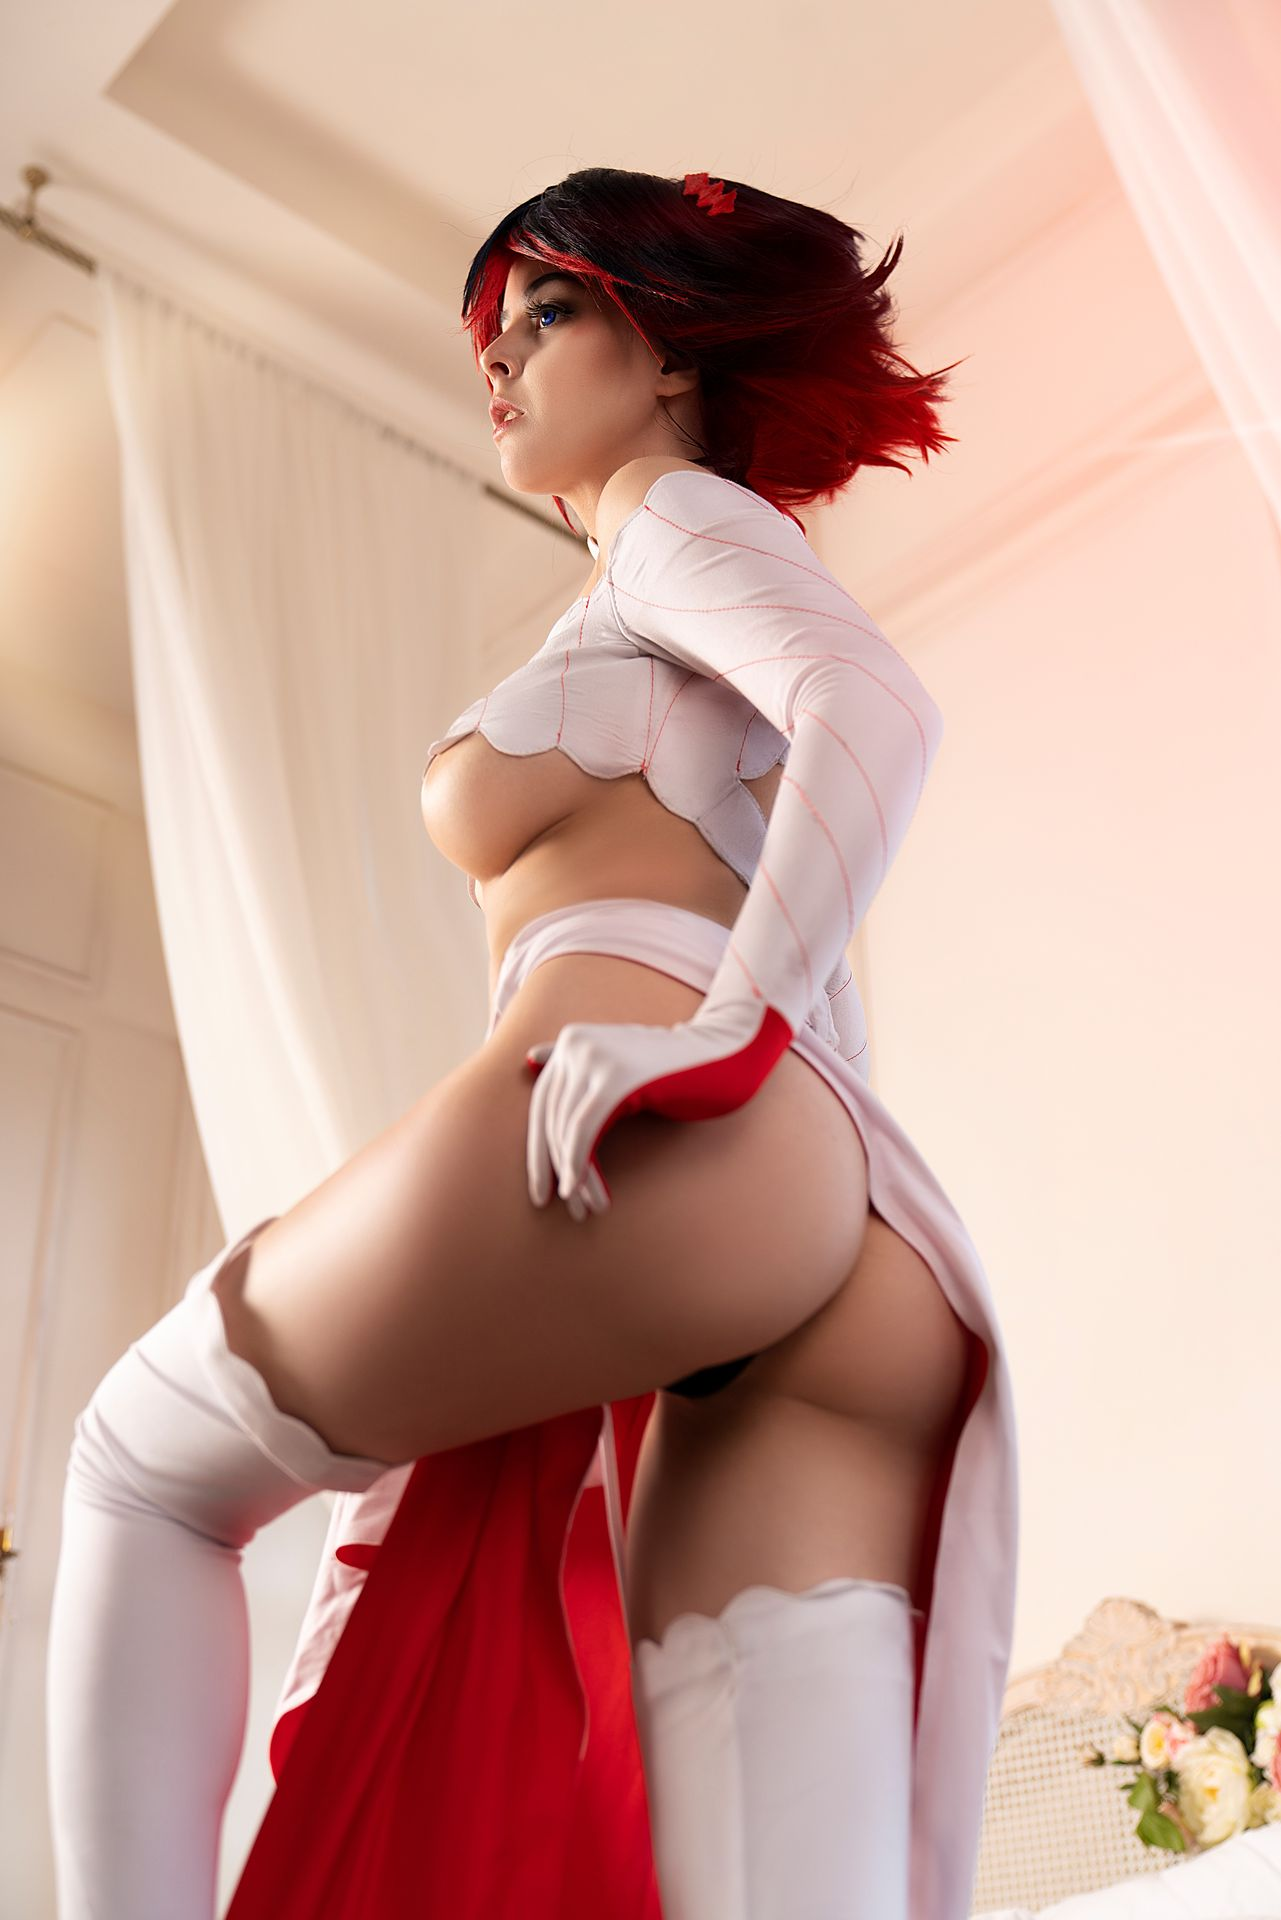 Helly Valentine Model and Cosplayer as Ryuko Matoi Bride